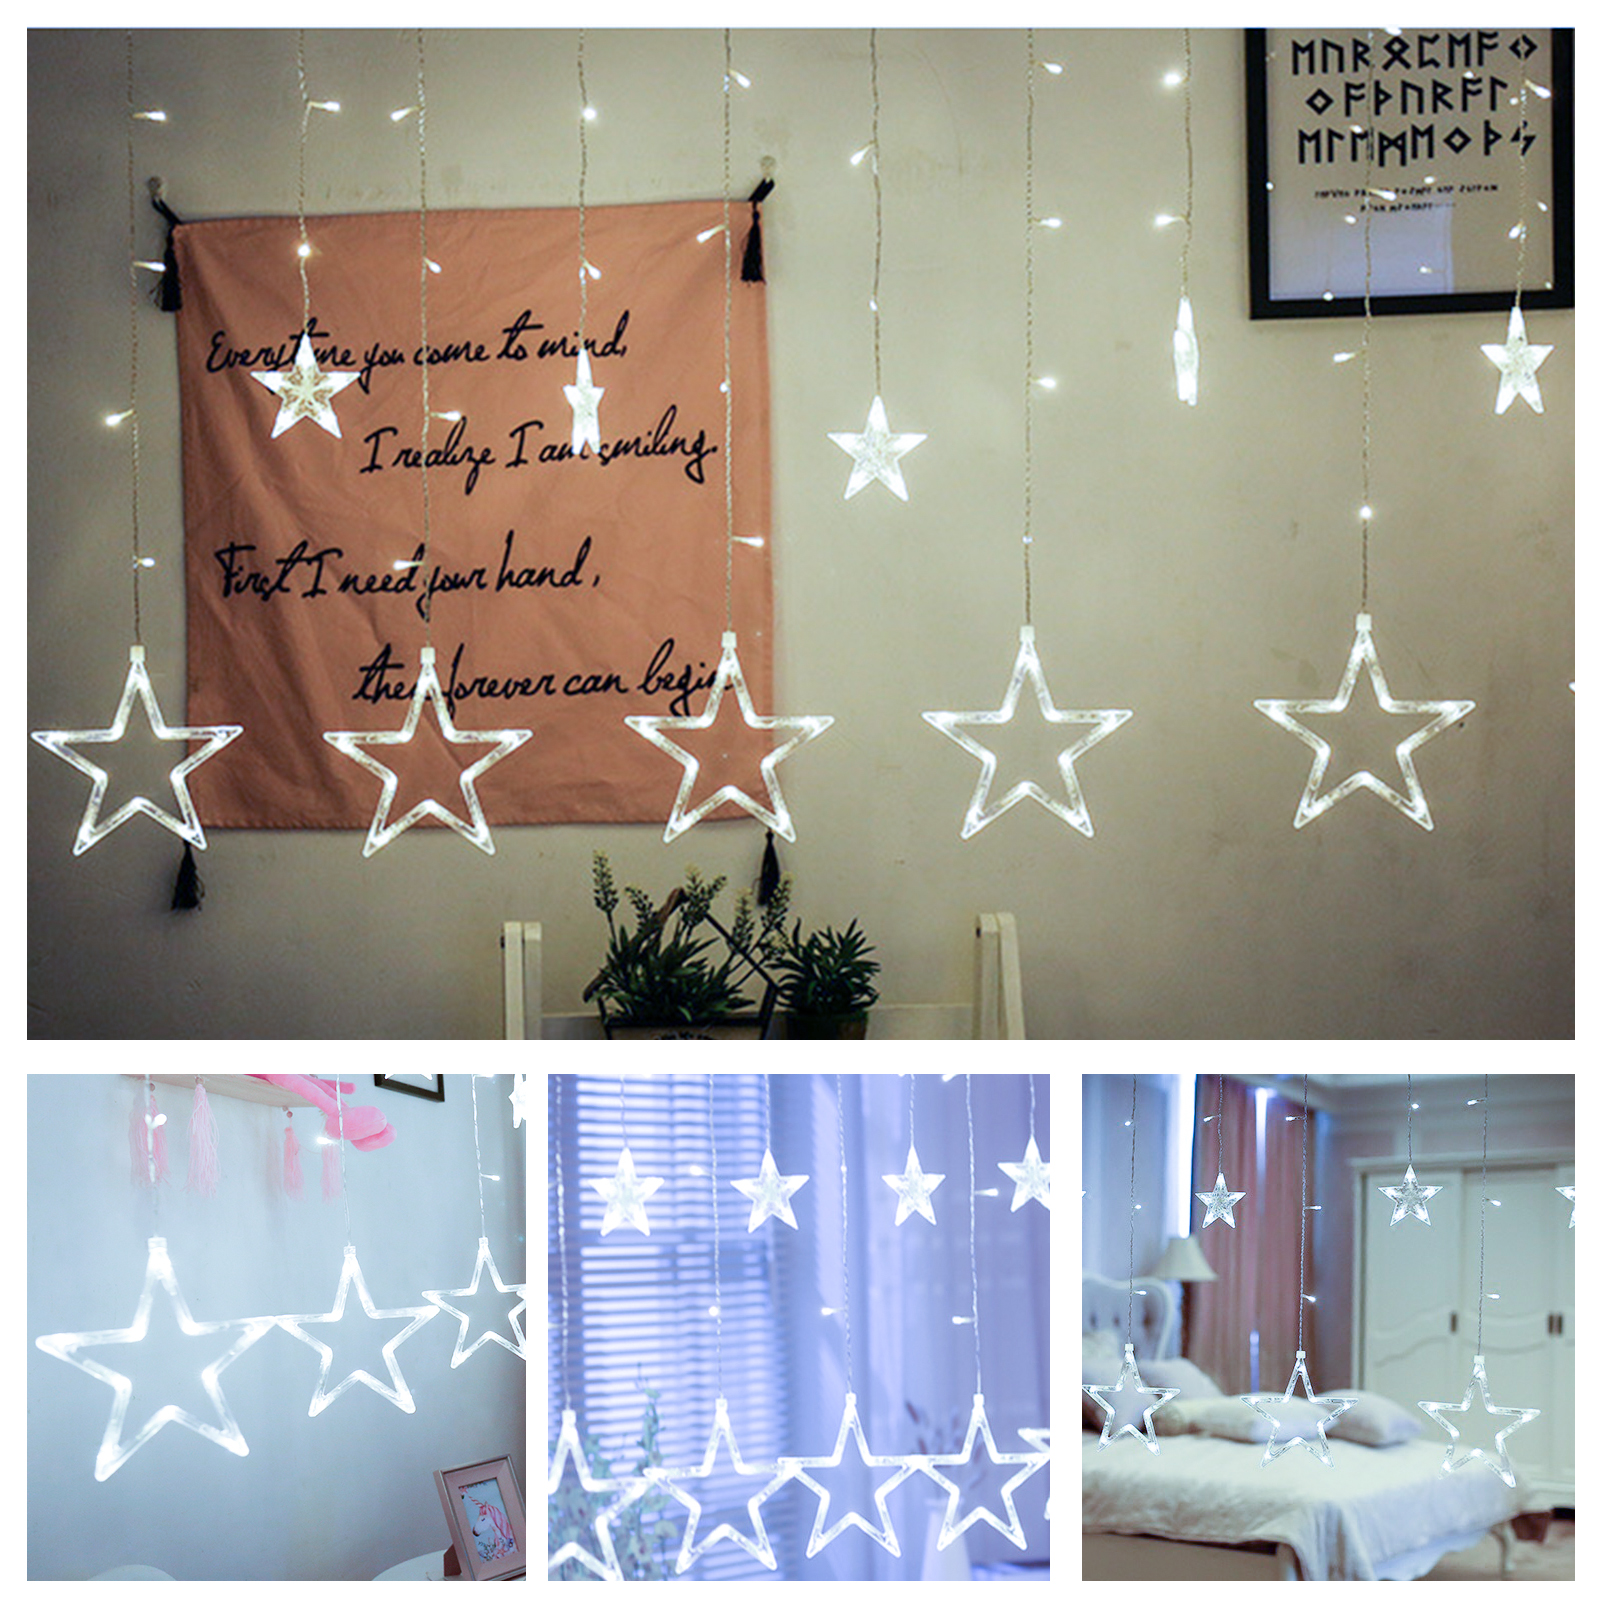 Twinkle Star 12 Stars 138 LED Curtain String Lights, Window Curtain Lights with 8 Flashing Modes Decoration for Christmas, Wedding, Party, Home, Patio Lawn, White/Warm White